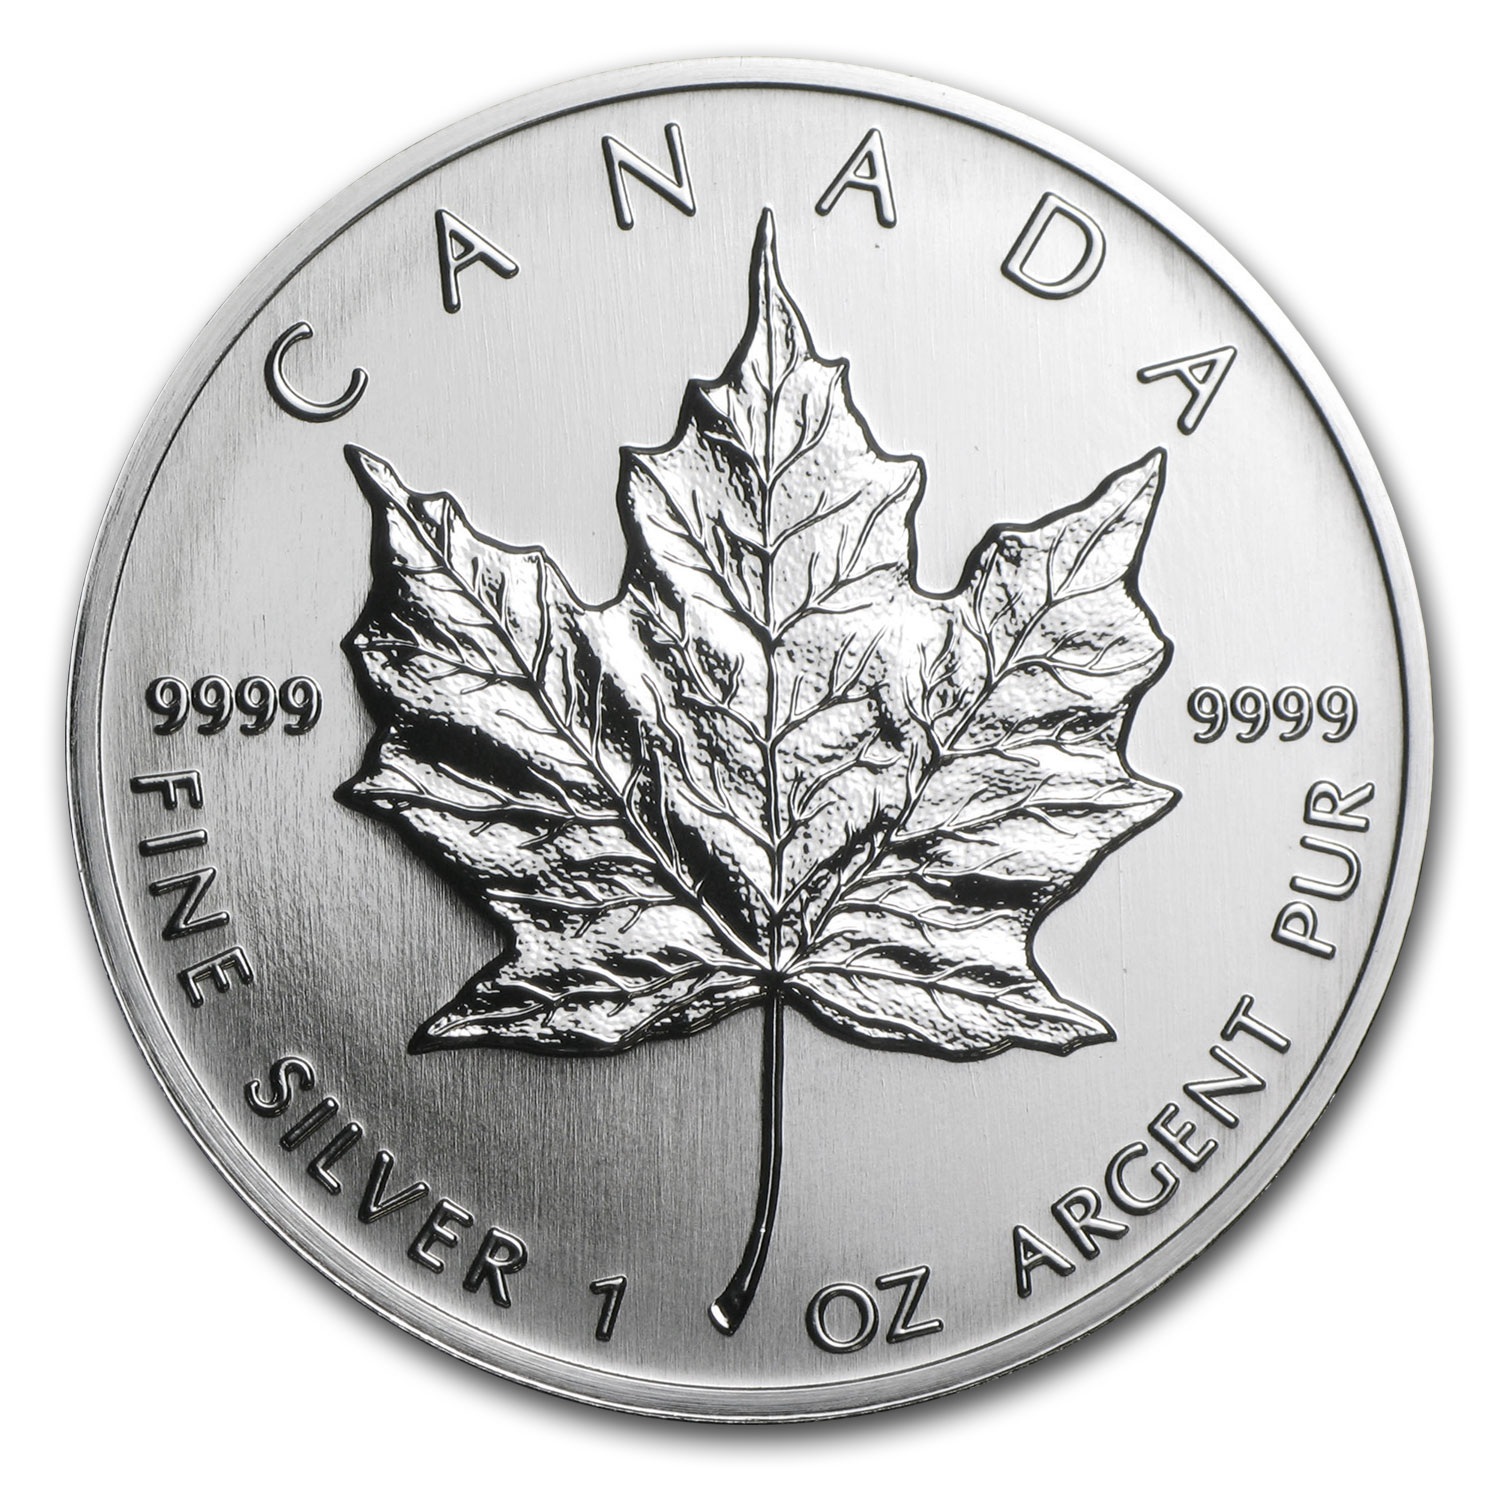 1993 Canada 1 oz Silver Maple Leaf BU